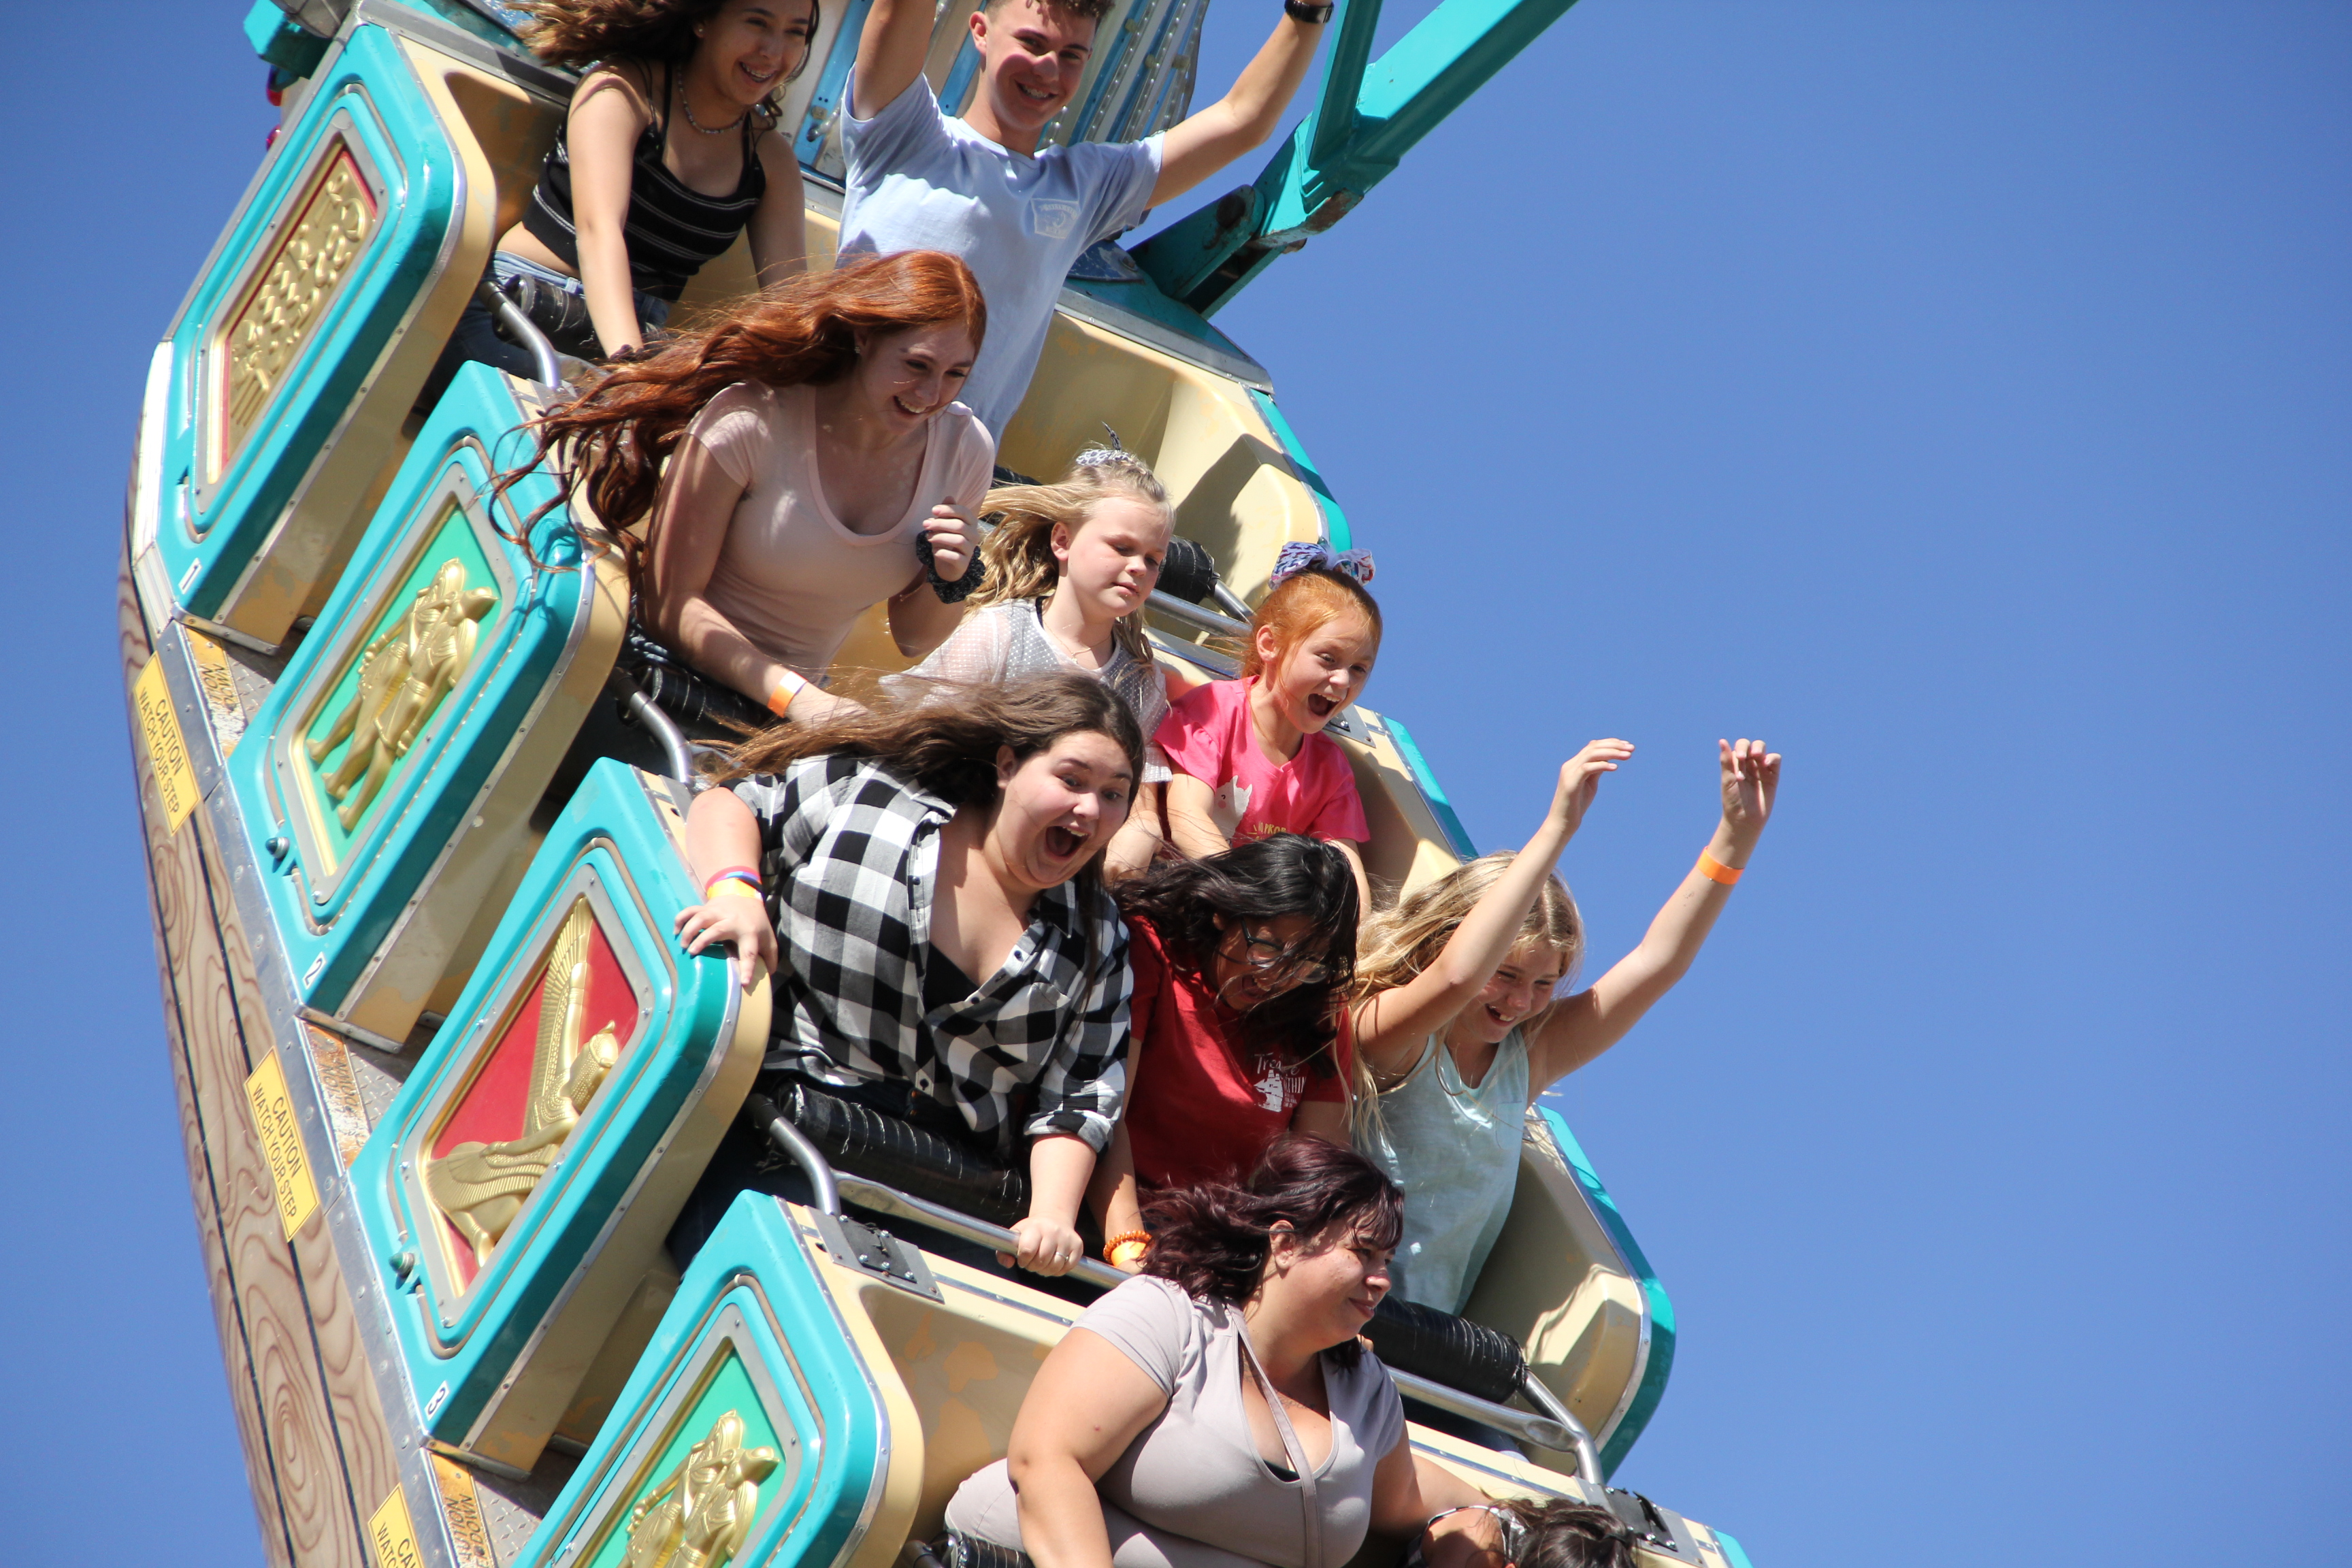 Young people on fair ride (6)